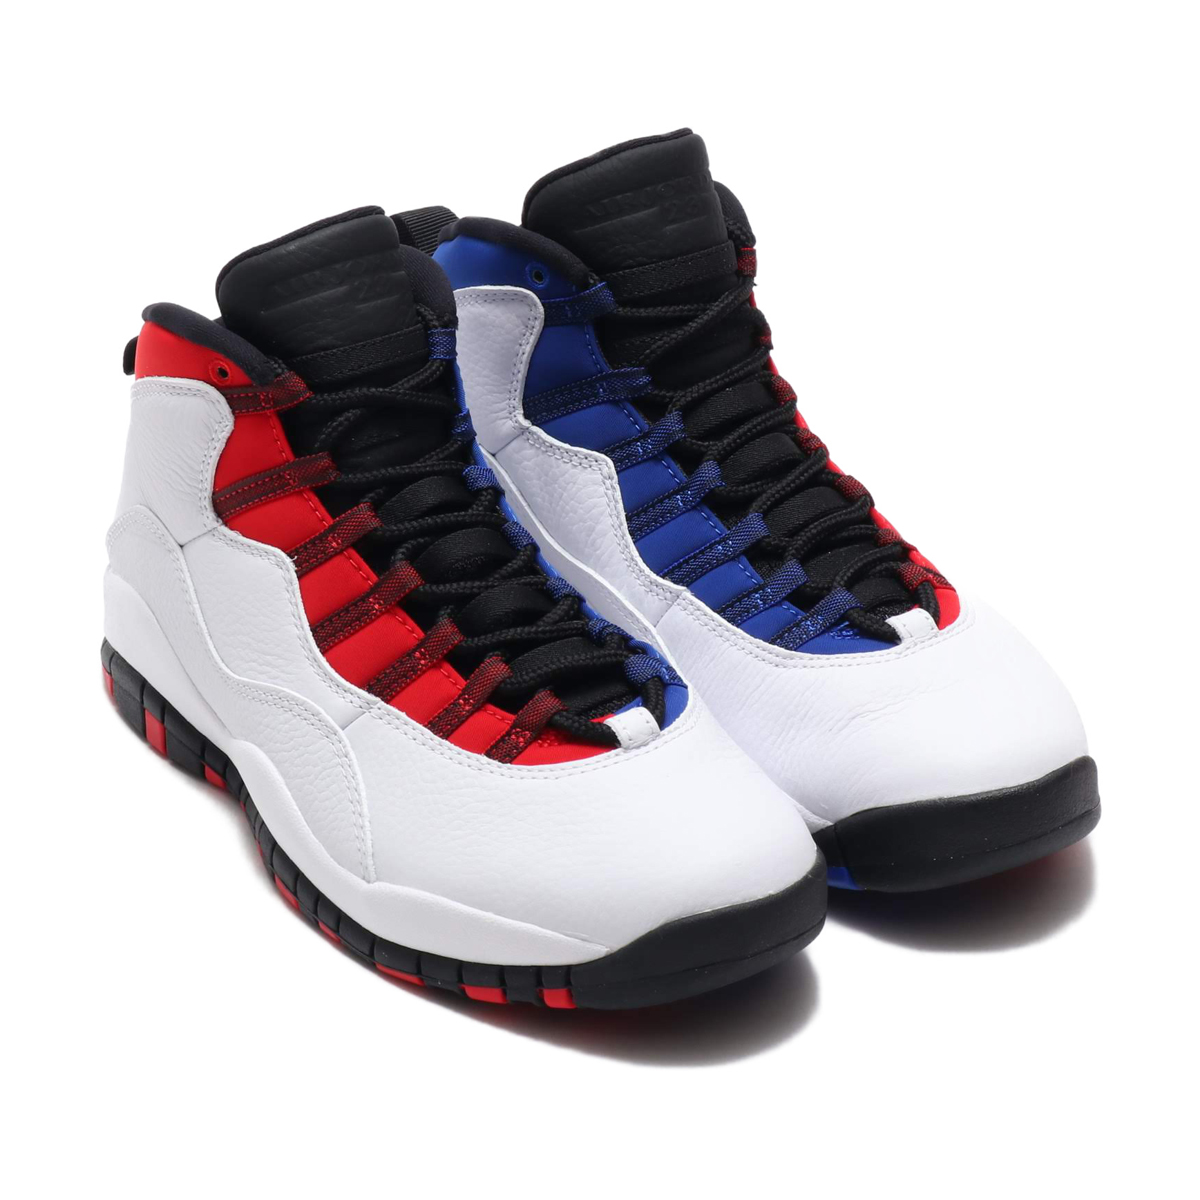 573c15c9b0dd NIKE AIR JORDAN 10 RETRO (nostalgic Nike Air Jordan 10) (WHITE BLACK-UNIVERSITY  RED-HYPER ROYAL) 18SP-S